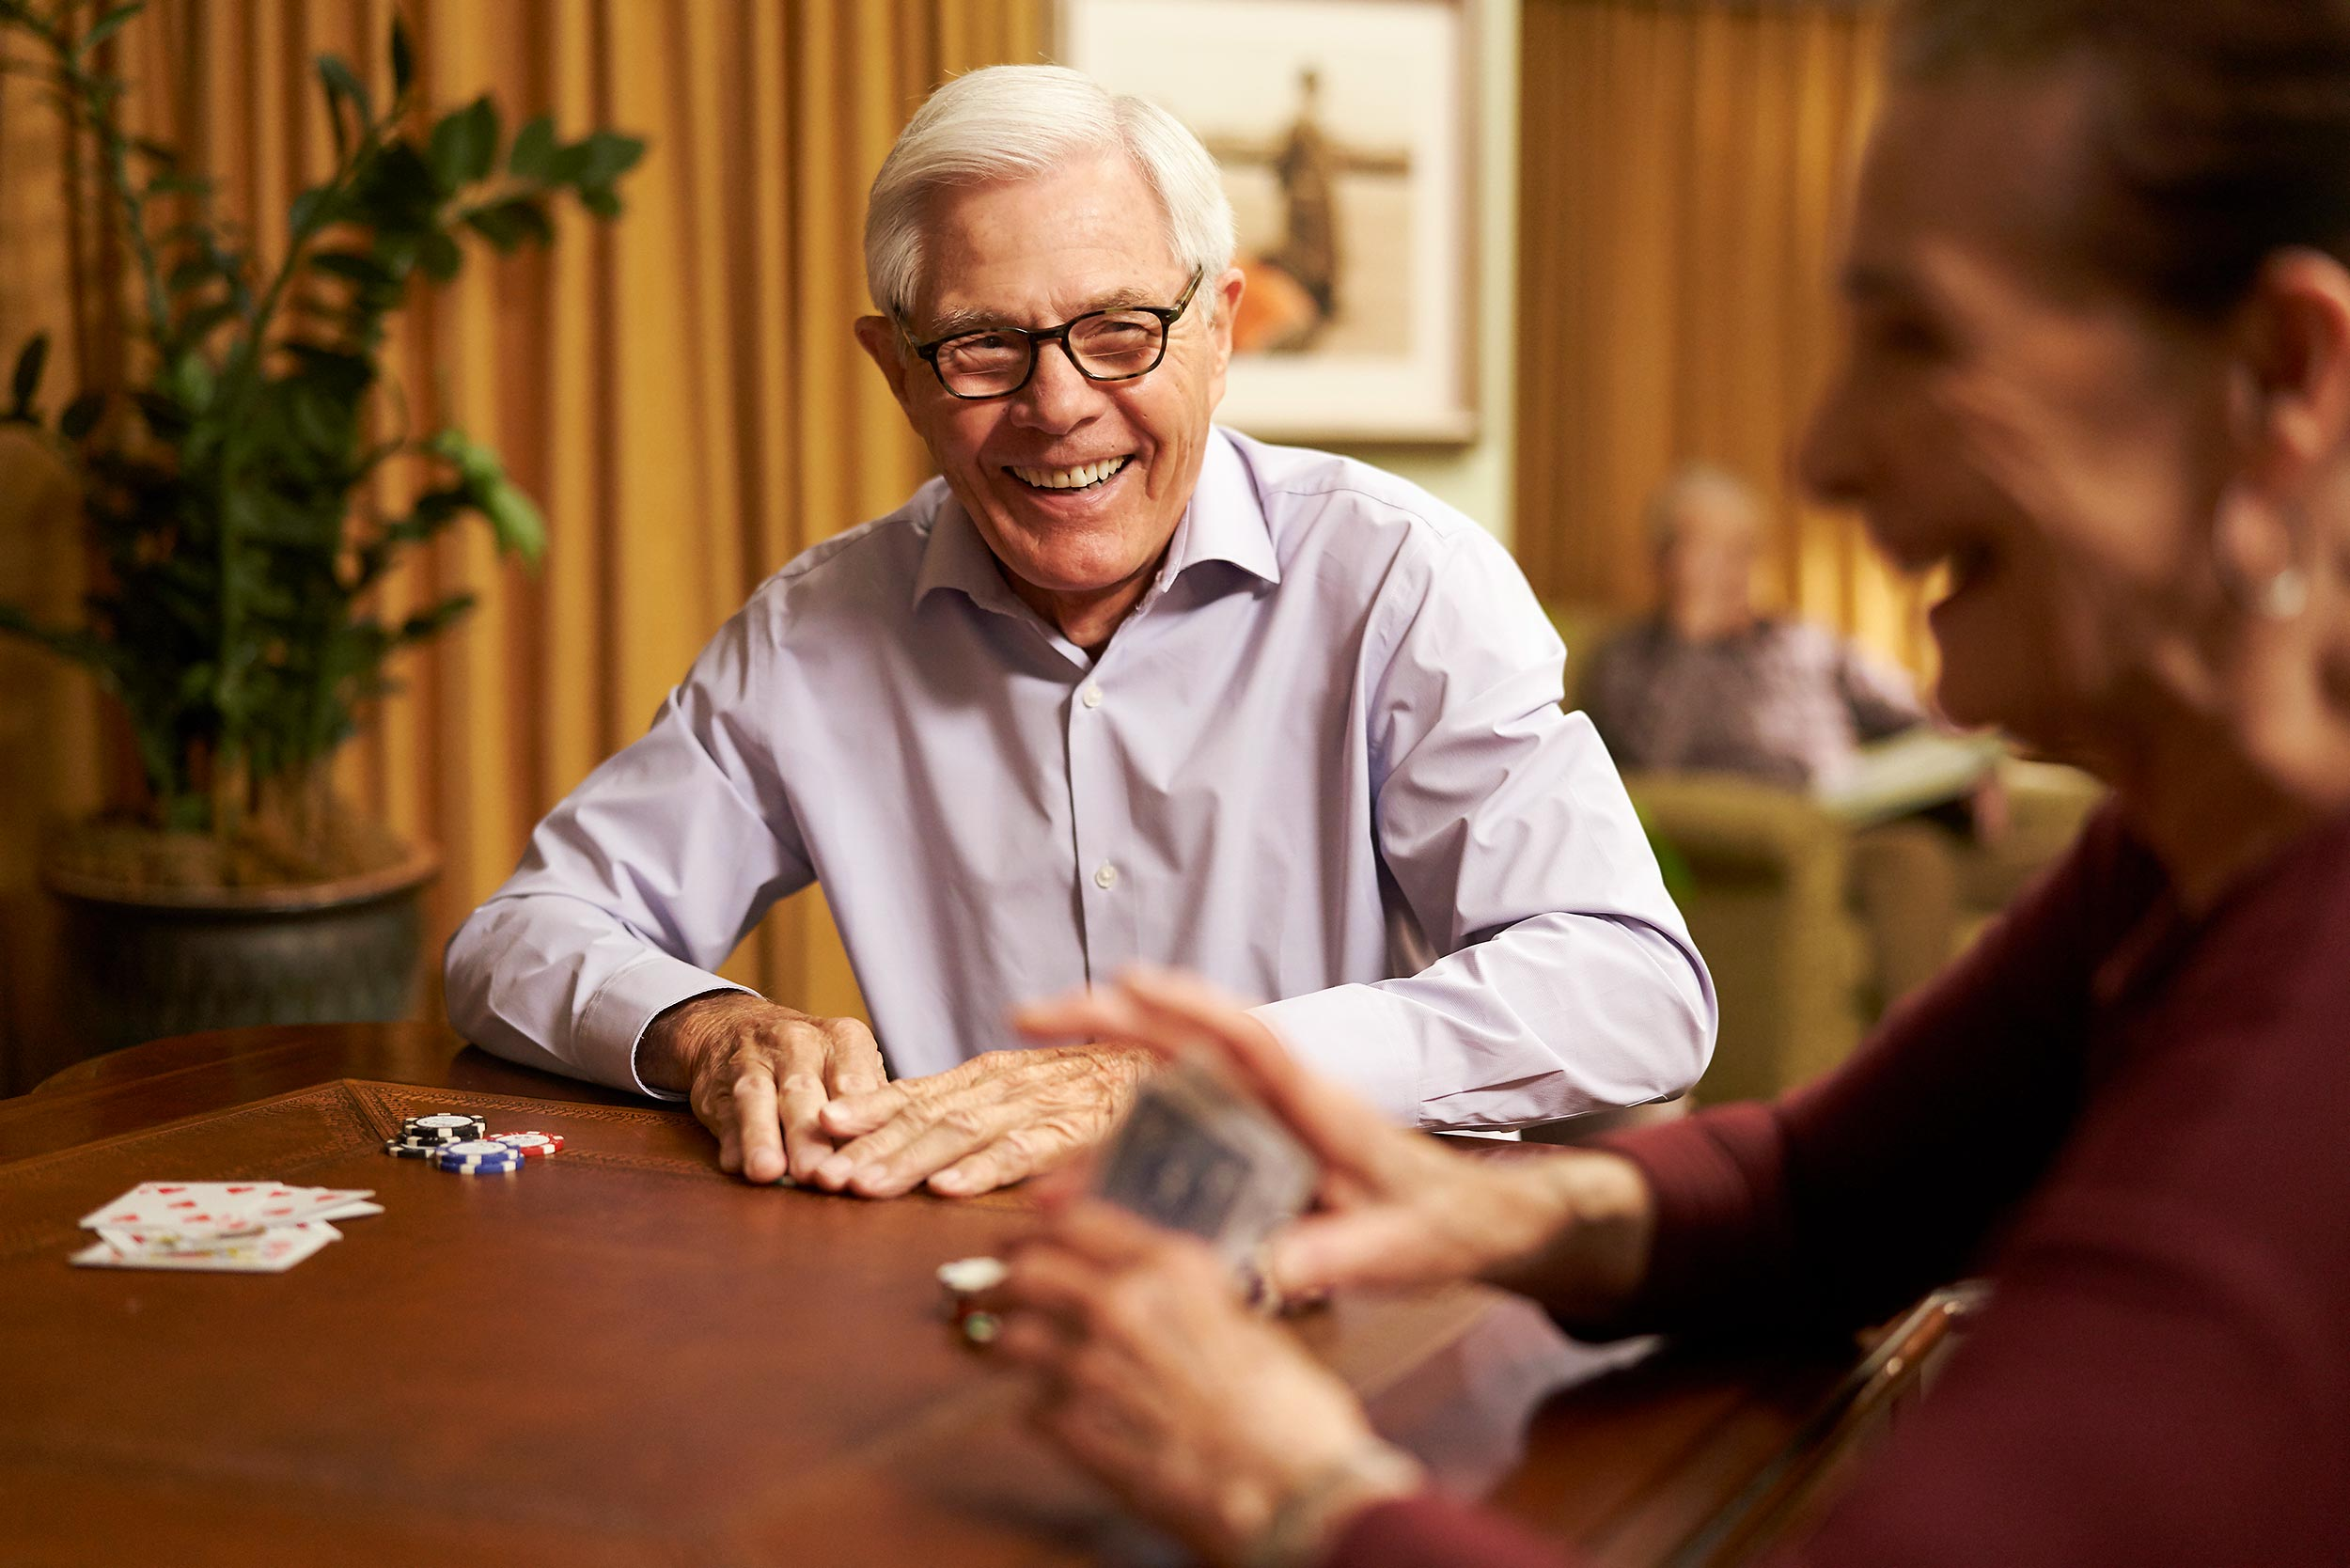 Aegis_WA_Bellevue_Library_2800-cards-poker-seniors